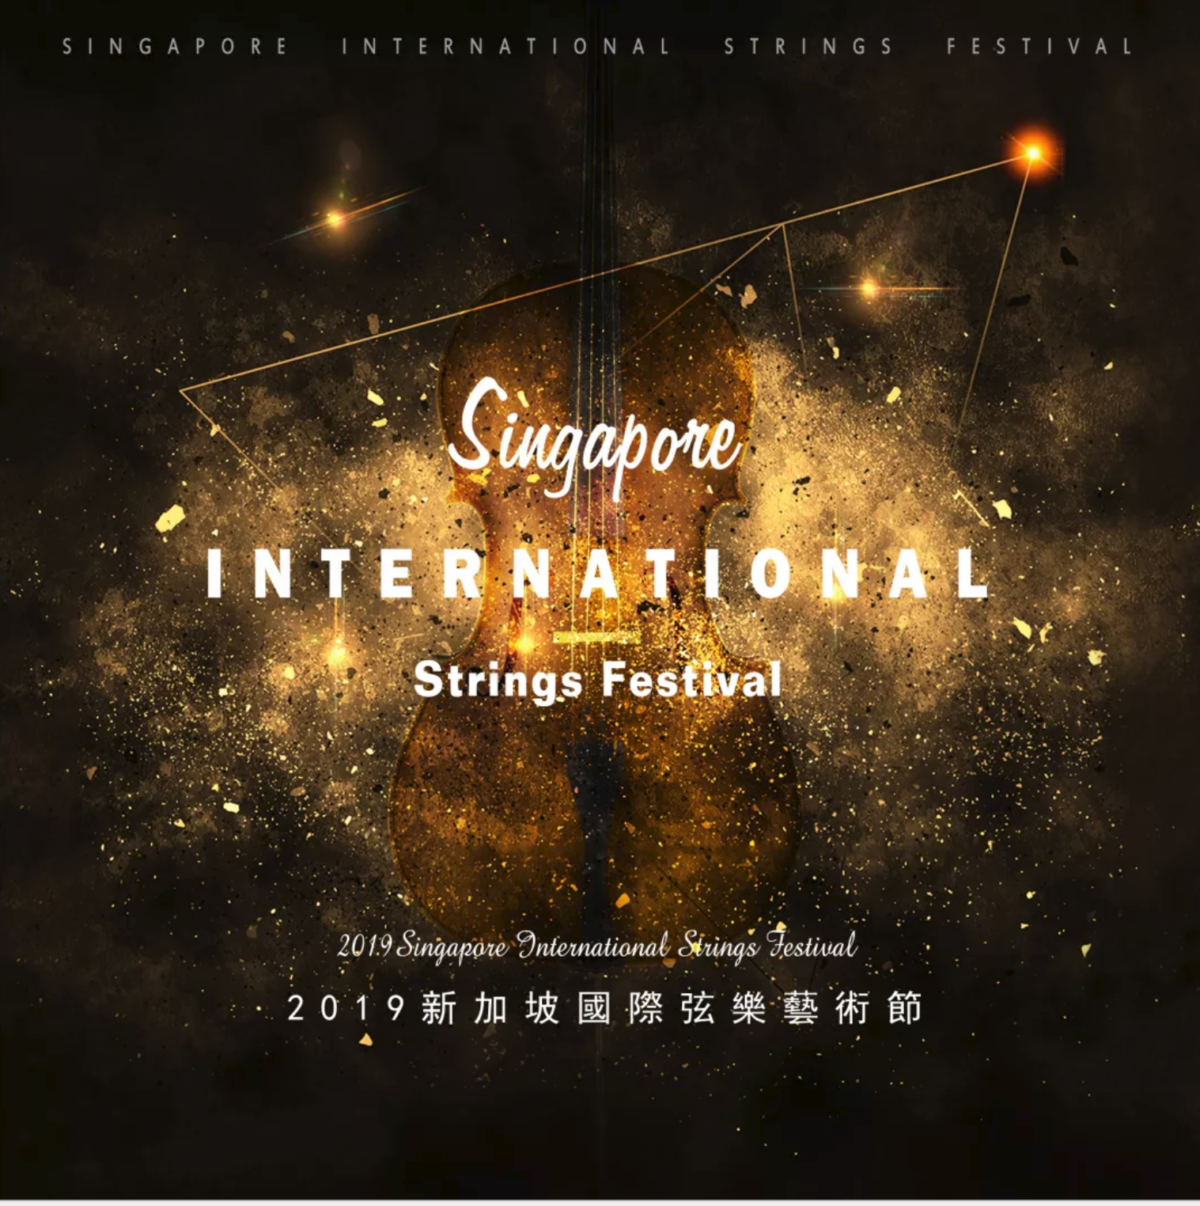 APPLICATIONS OPEN – 2019 Singapore International Strings Festival